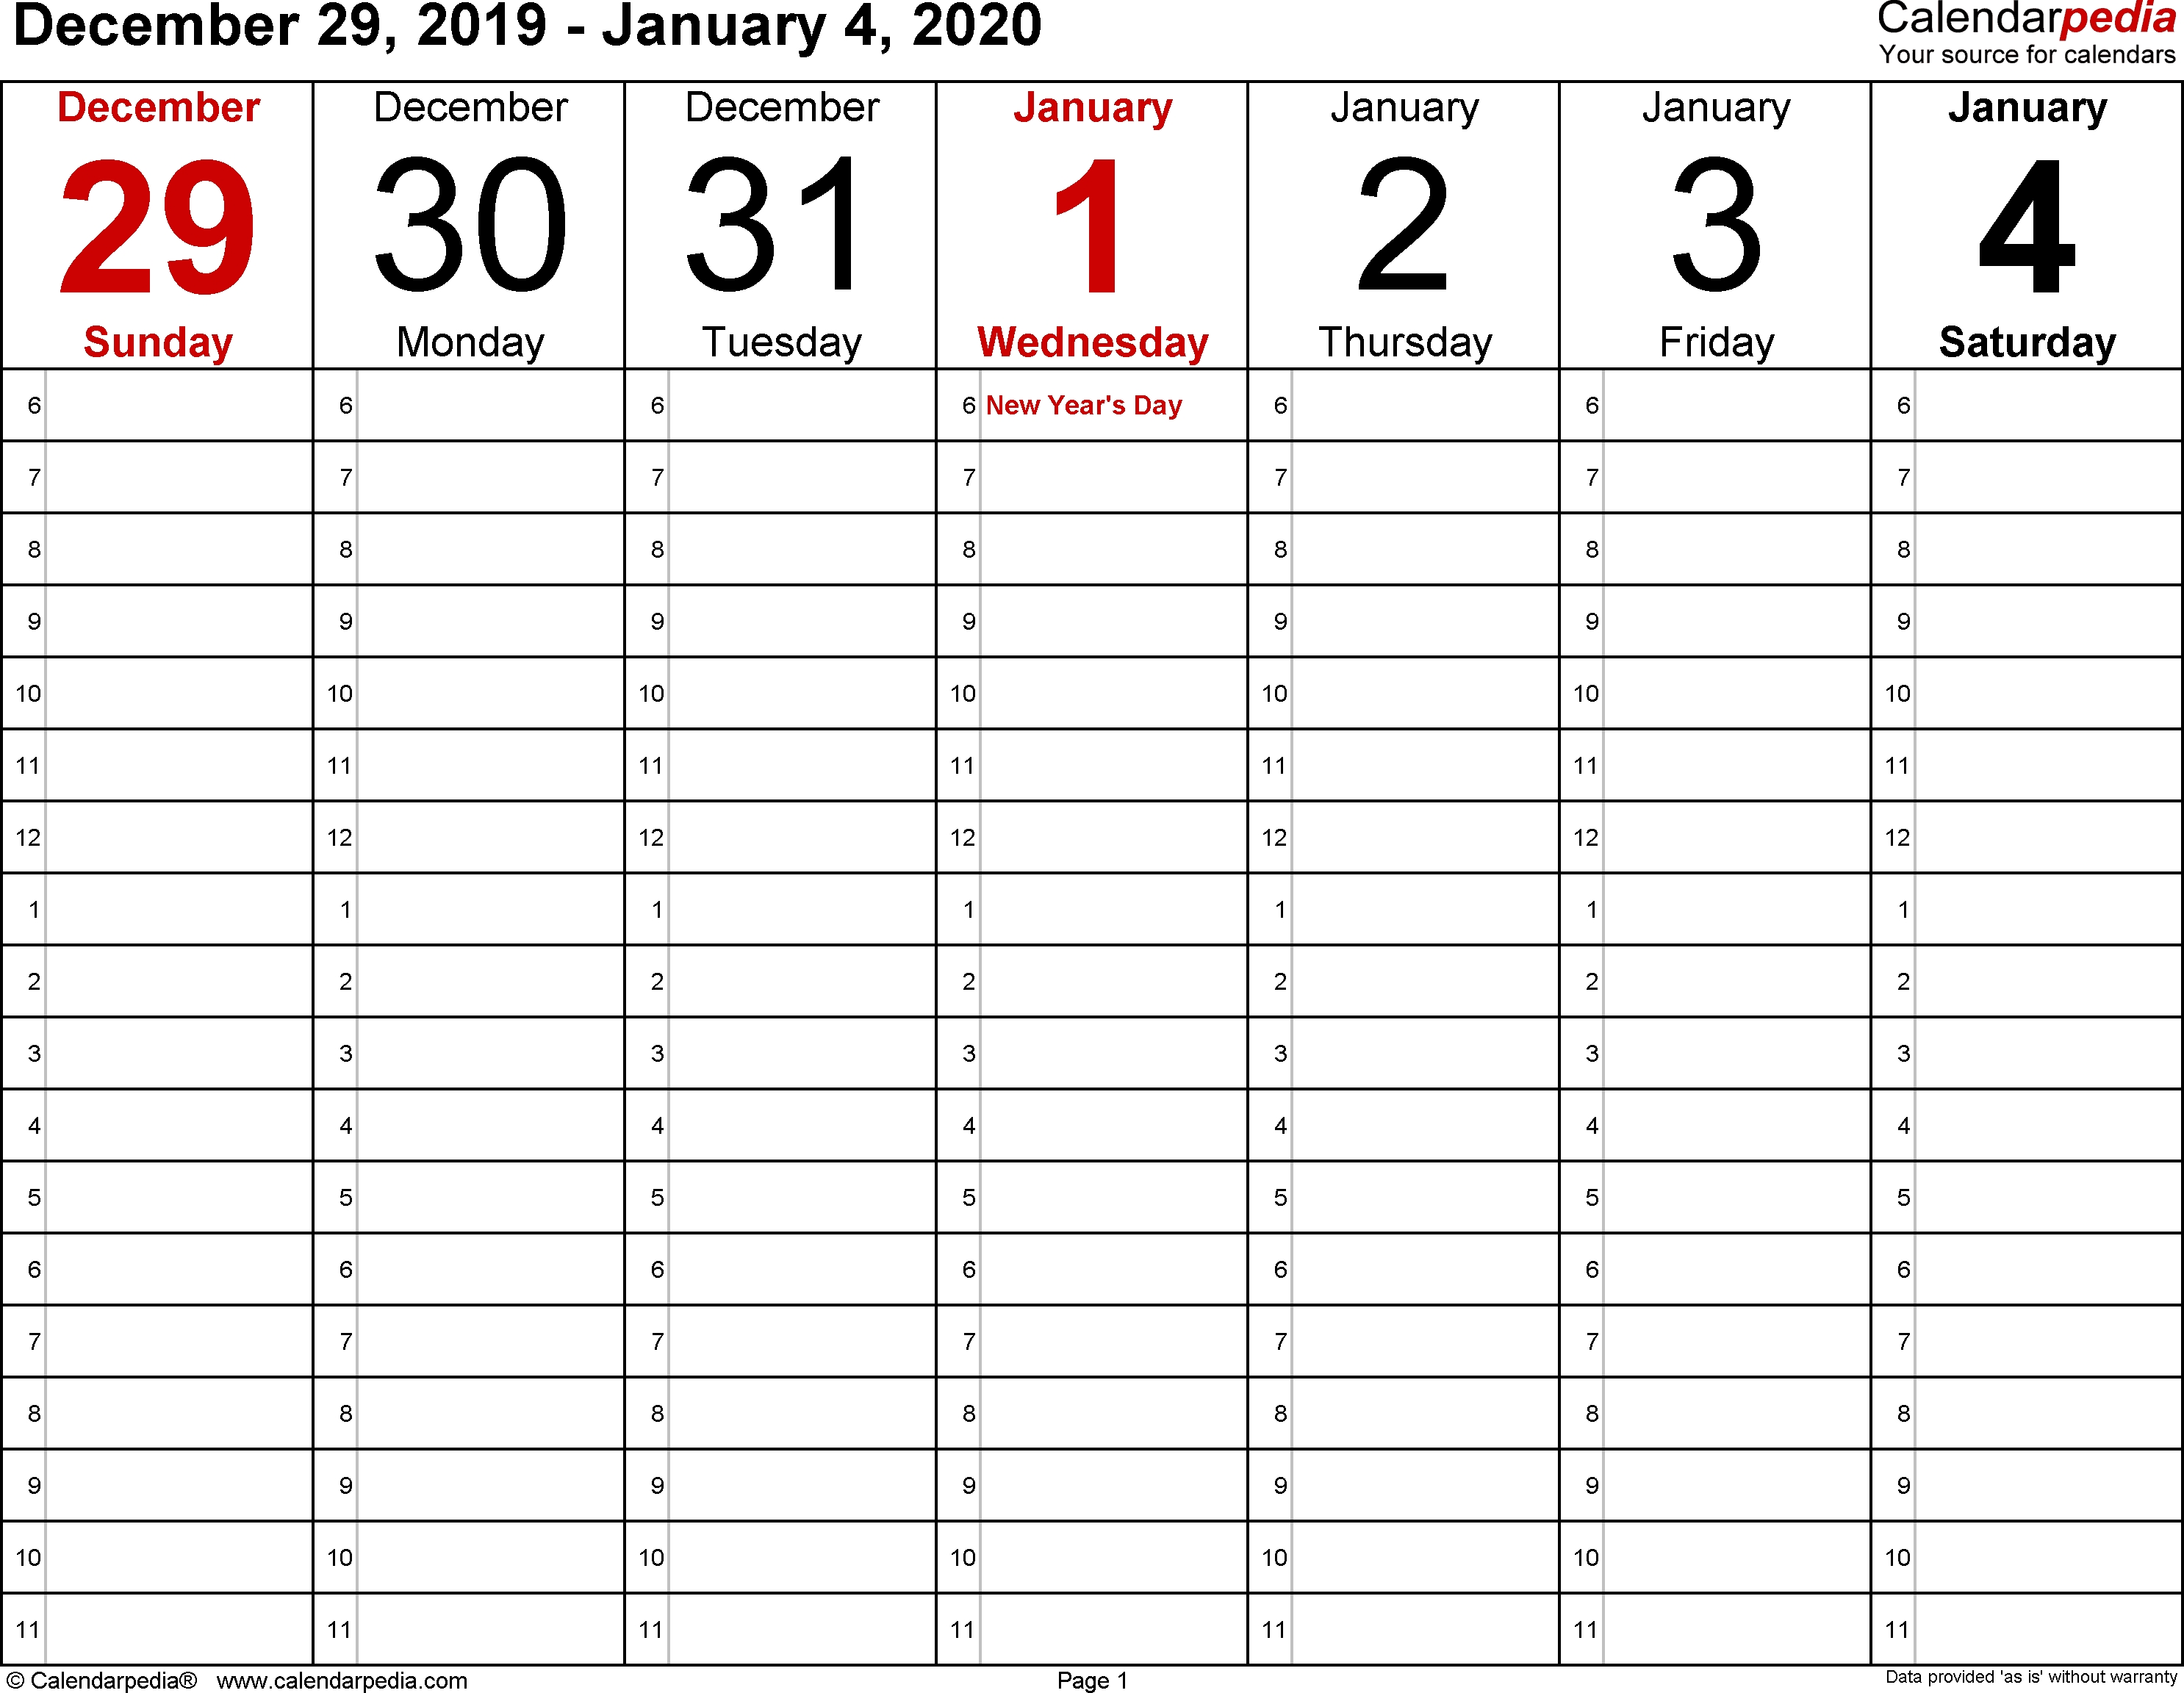 Weekly Calendars 2020 For Word - 12 Free Printable Templates-Blank I 9 Form 2020 Printable